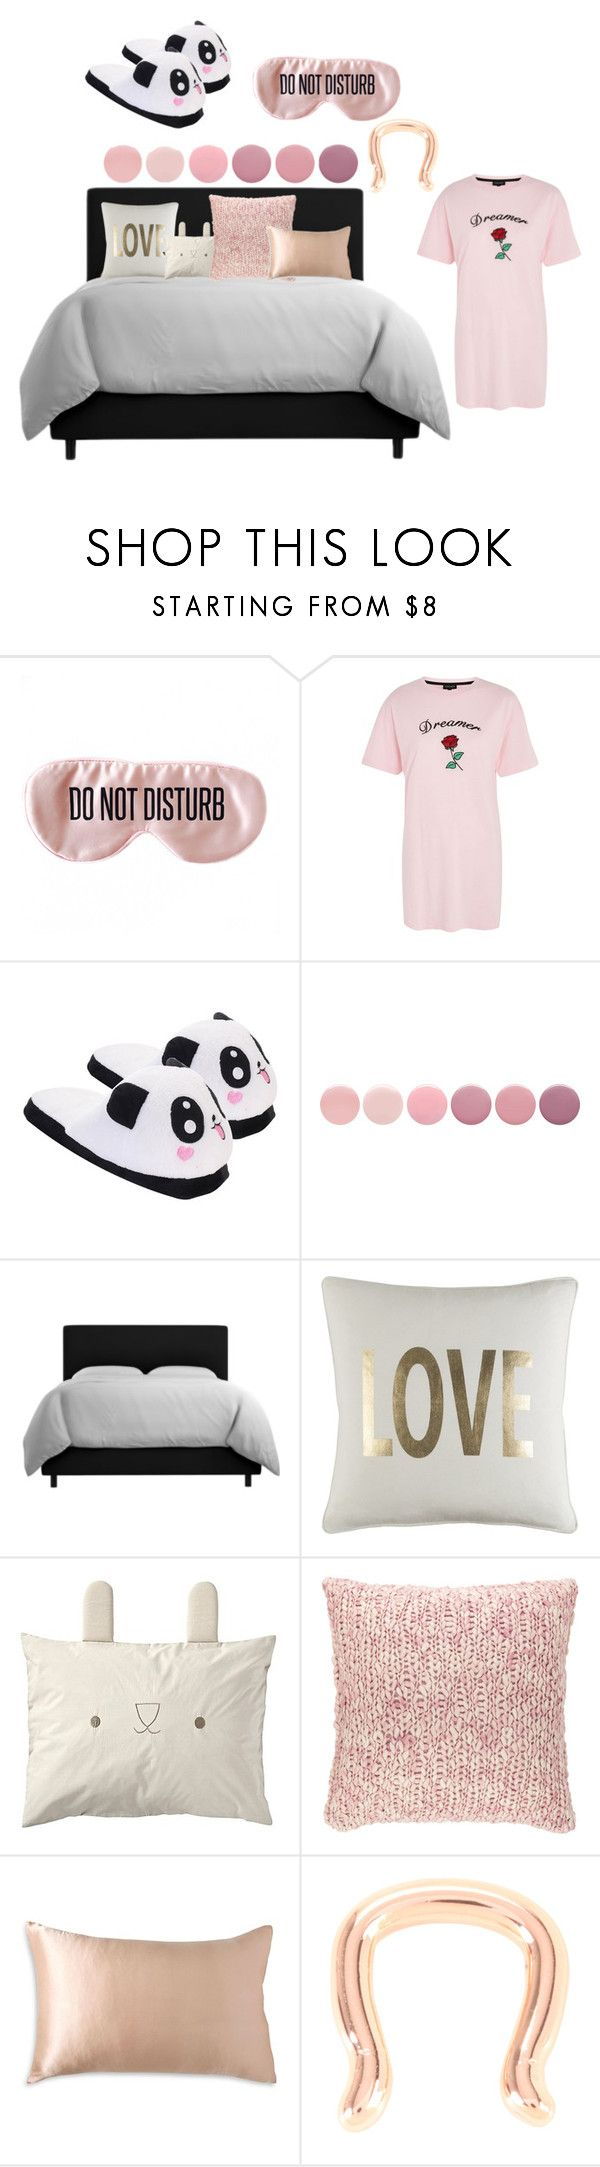 """ZZZ"" by daquashiasalaam ❤ liked on Polyvore featuring BaubleBar, Topshop, Deborah Lippmann, Pine Cone Hill, Donna Karan and Hot Topic"